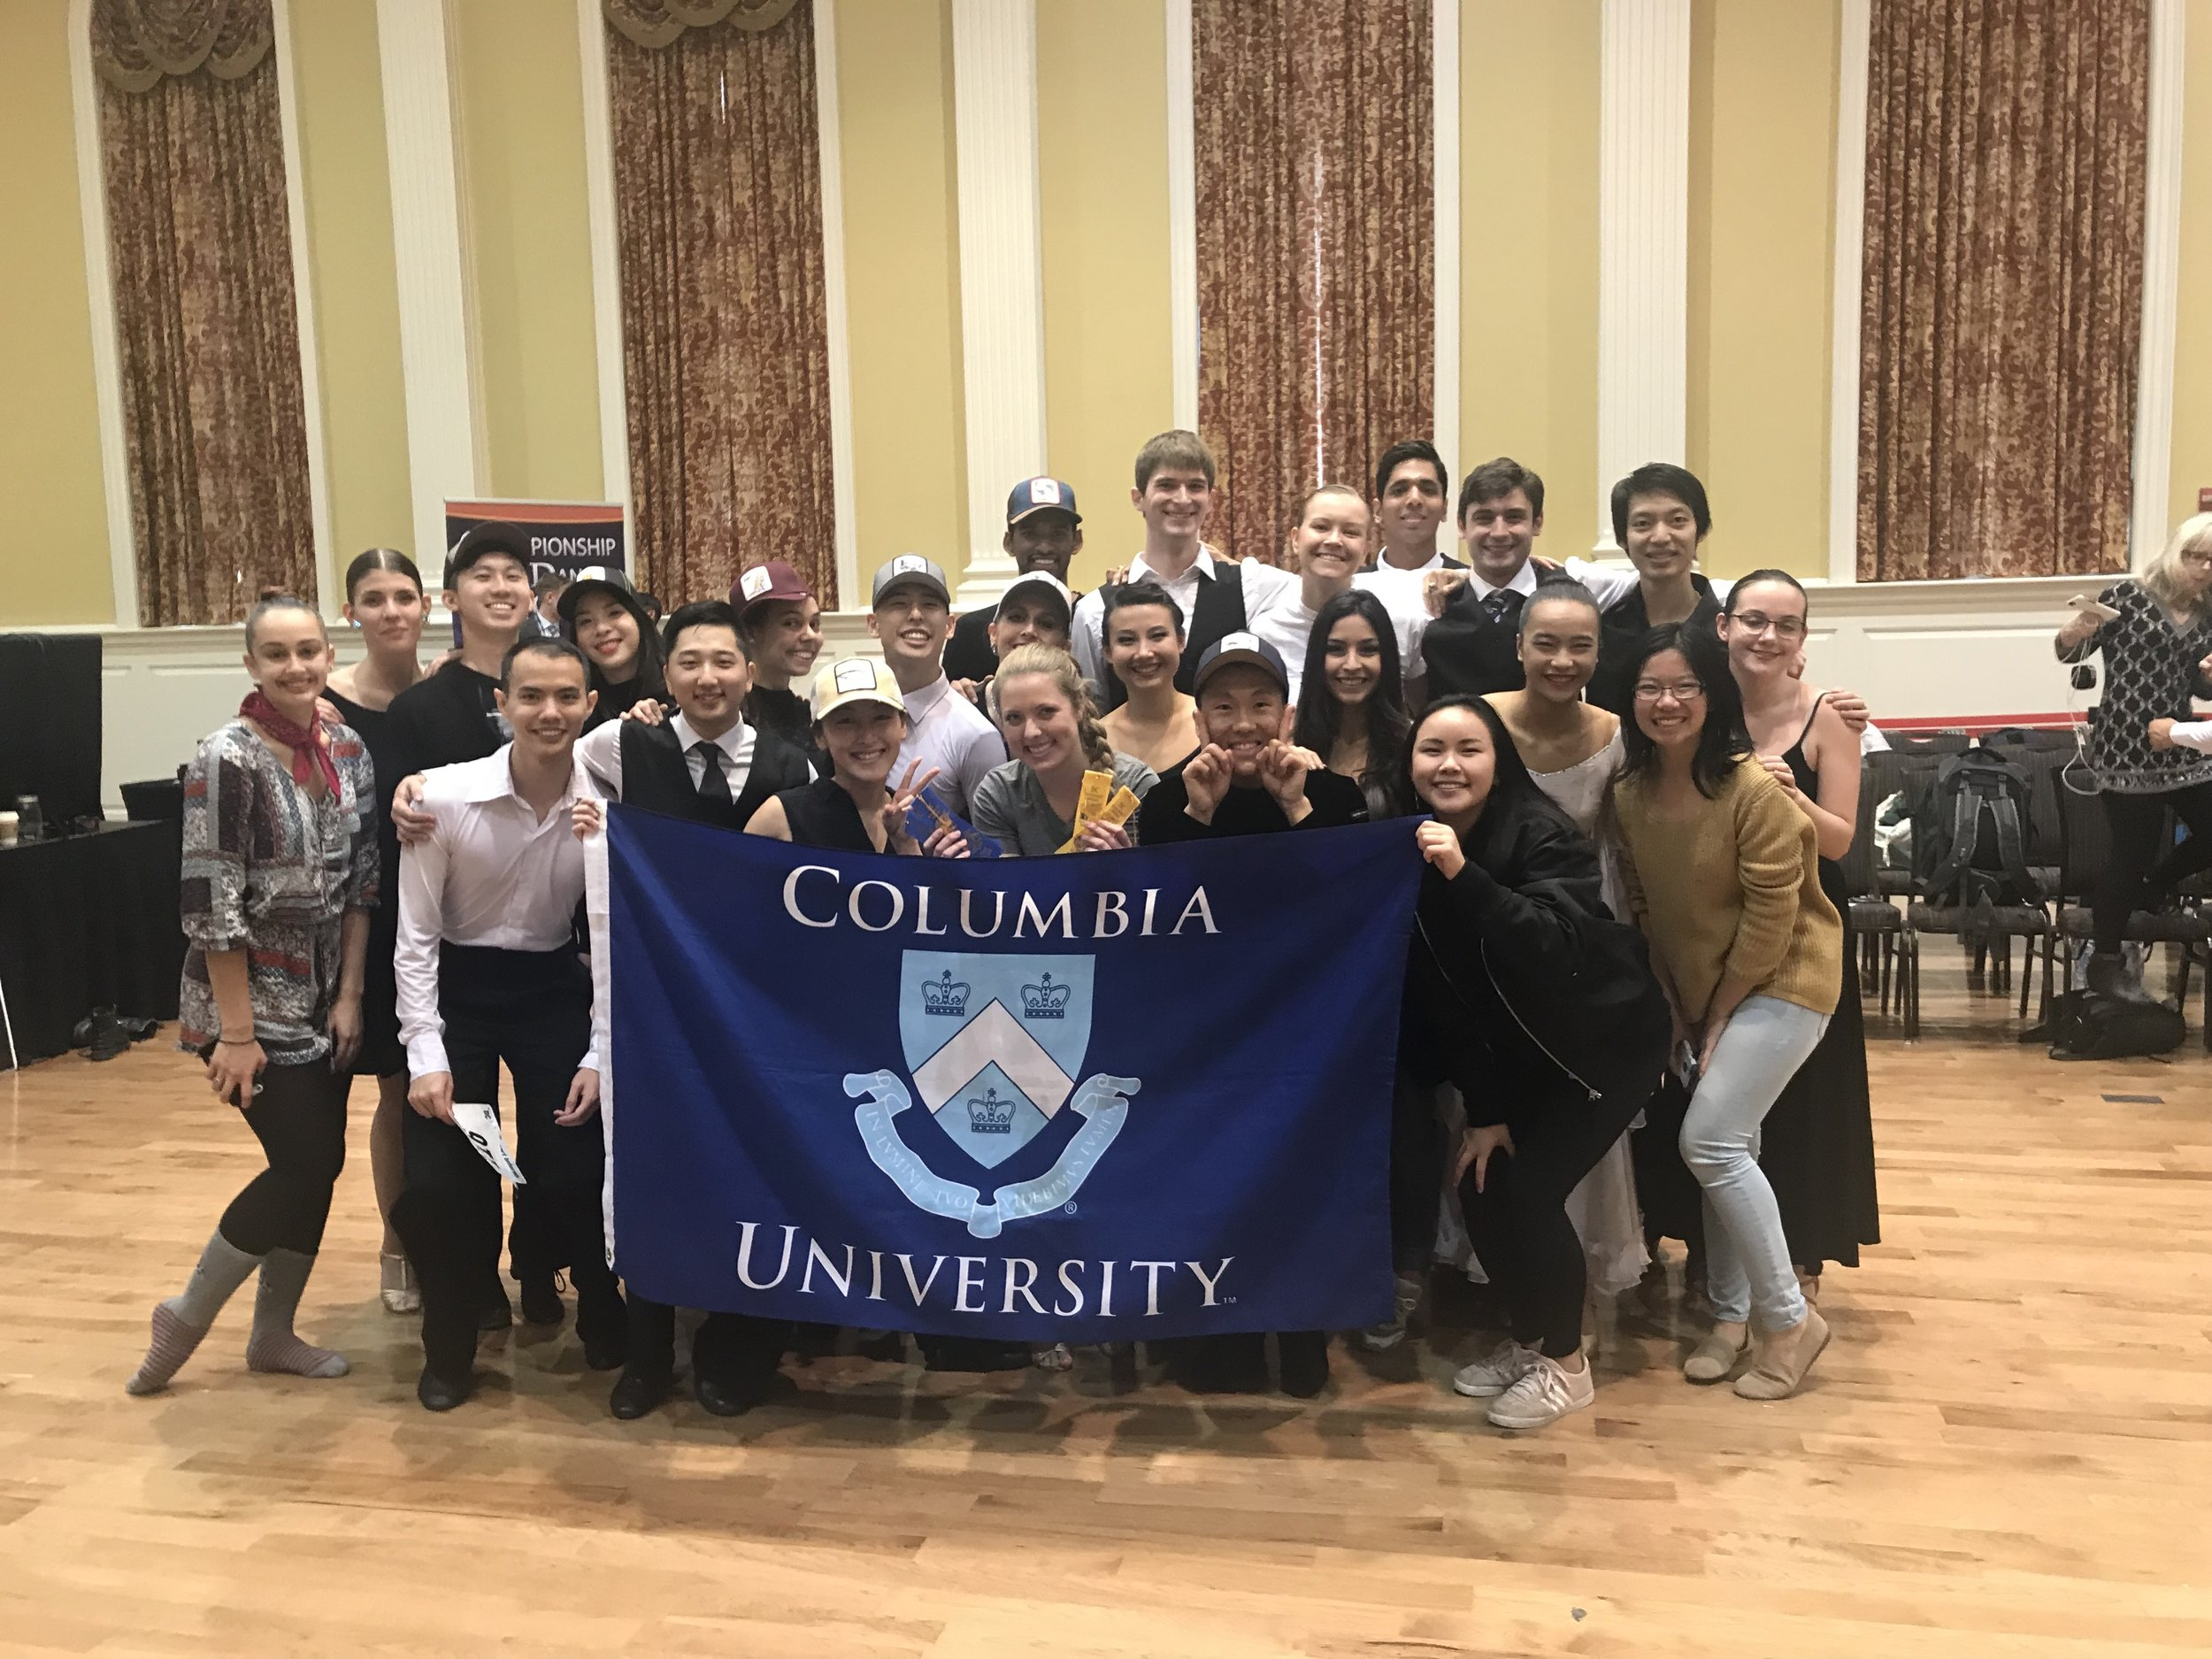 Who we are - We are the premier ballroom dance organization at Columbia University, and we do everything we can to support our members in their dance journeys.We offer classes and workshops, practice space, a one-on-one mentorship program, and the opportunity to compete. We are a fun-loving, social group that welcomes all new members — no partner or prior dance experience necessary to join!